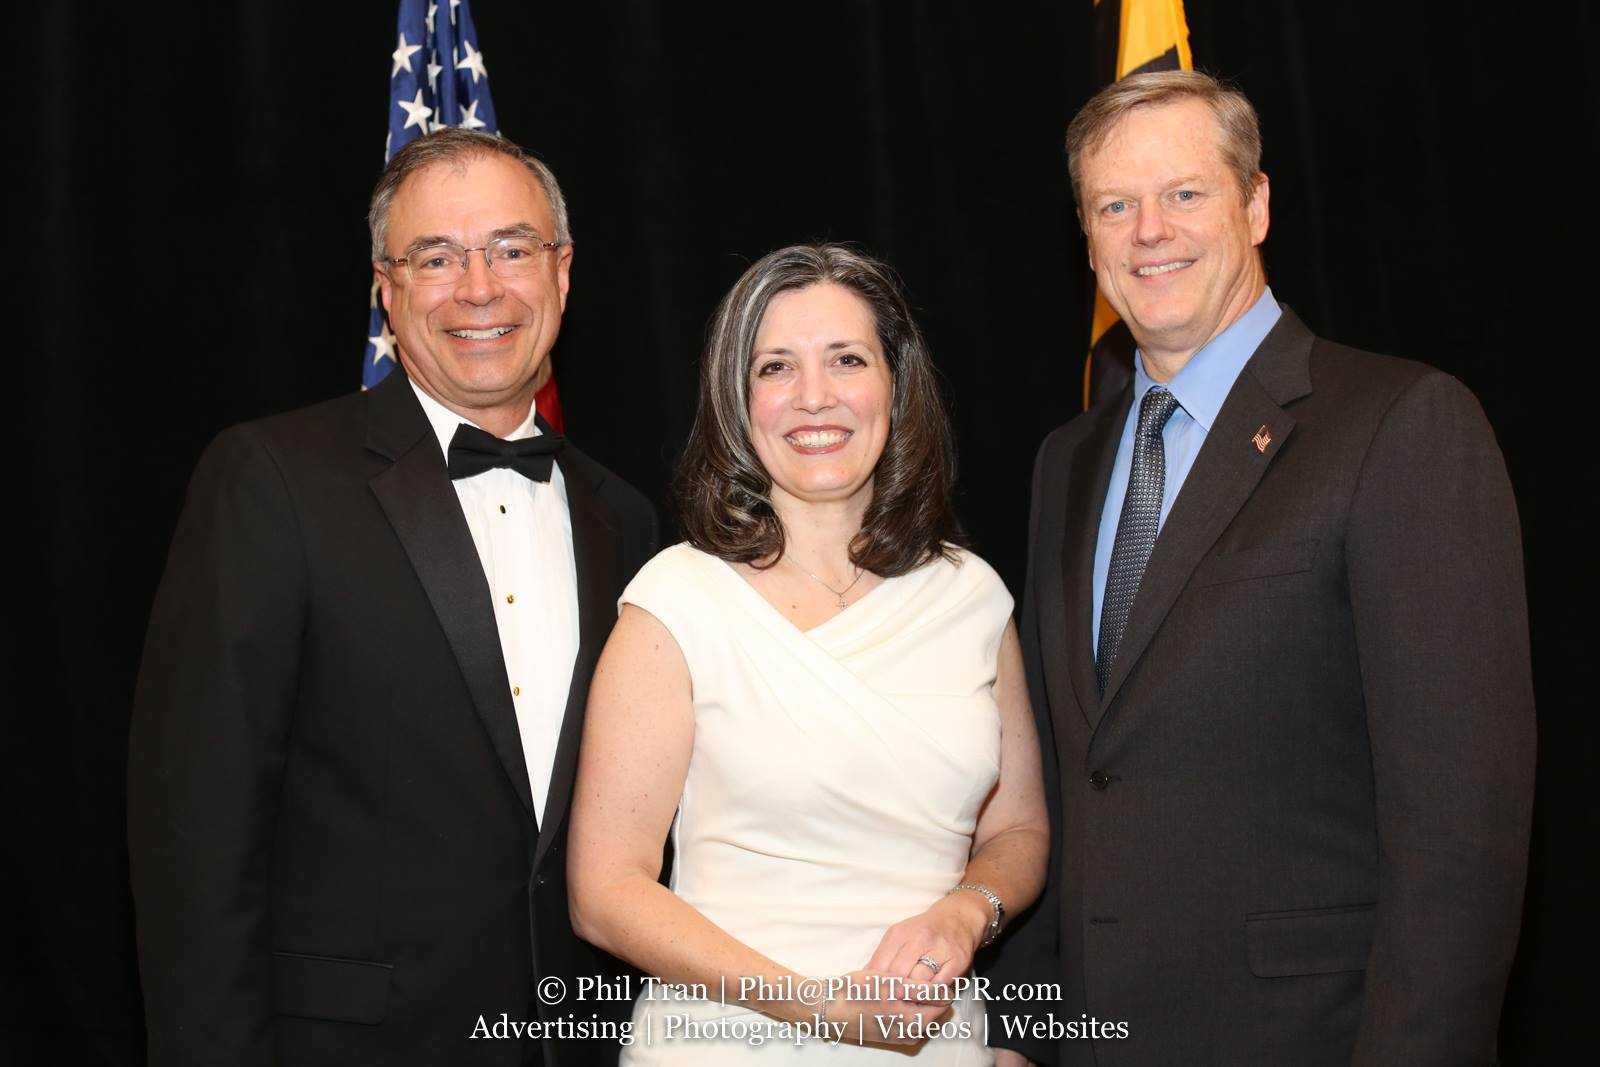 With Gov. Baker - Massachussetts